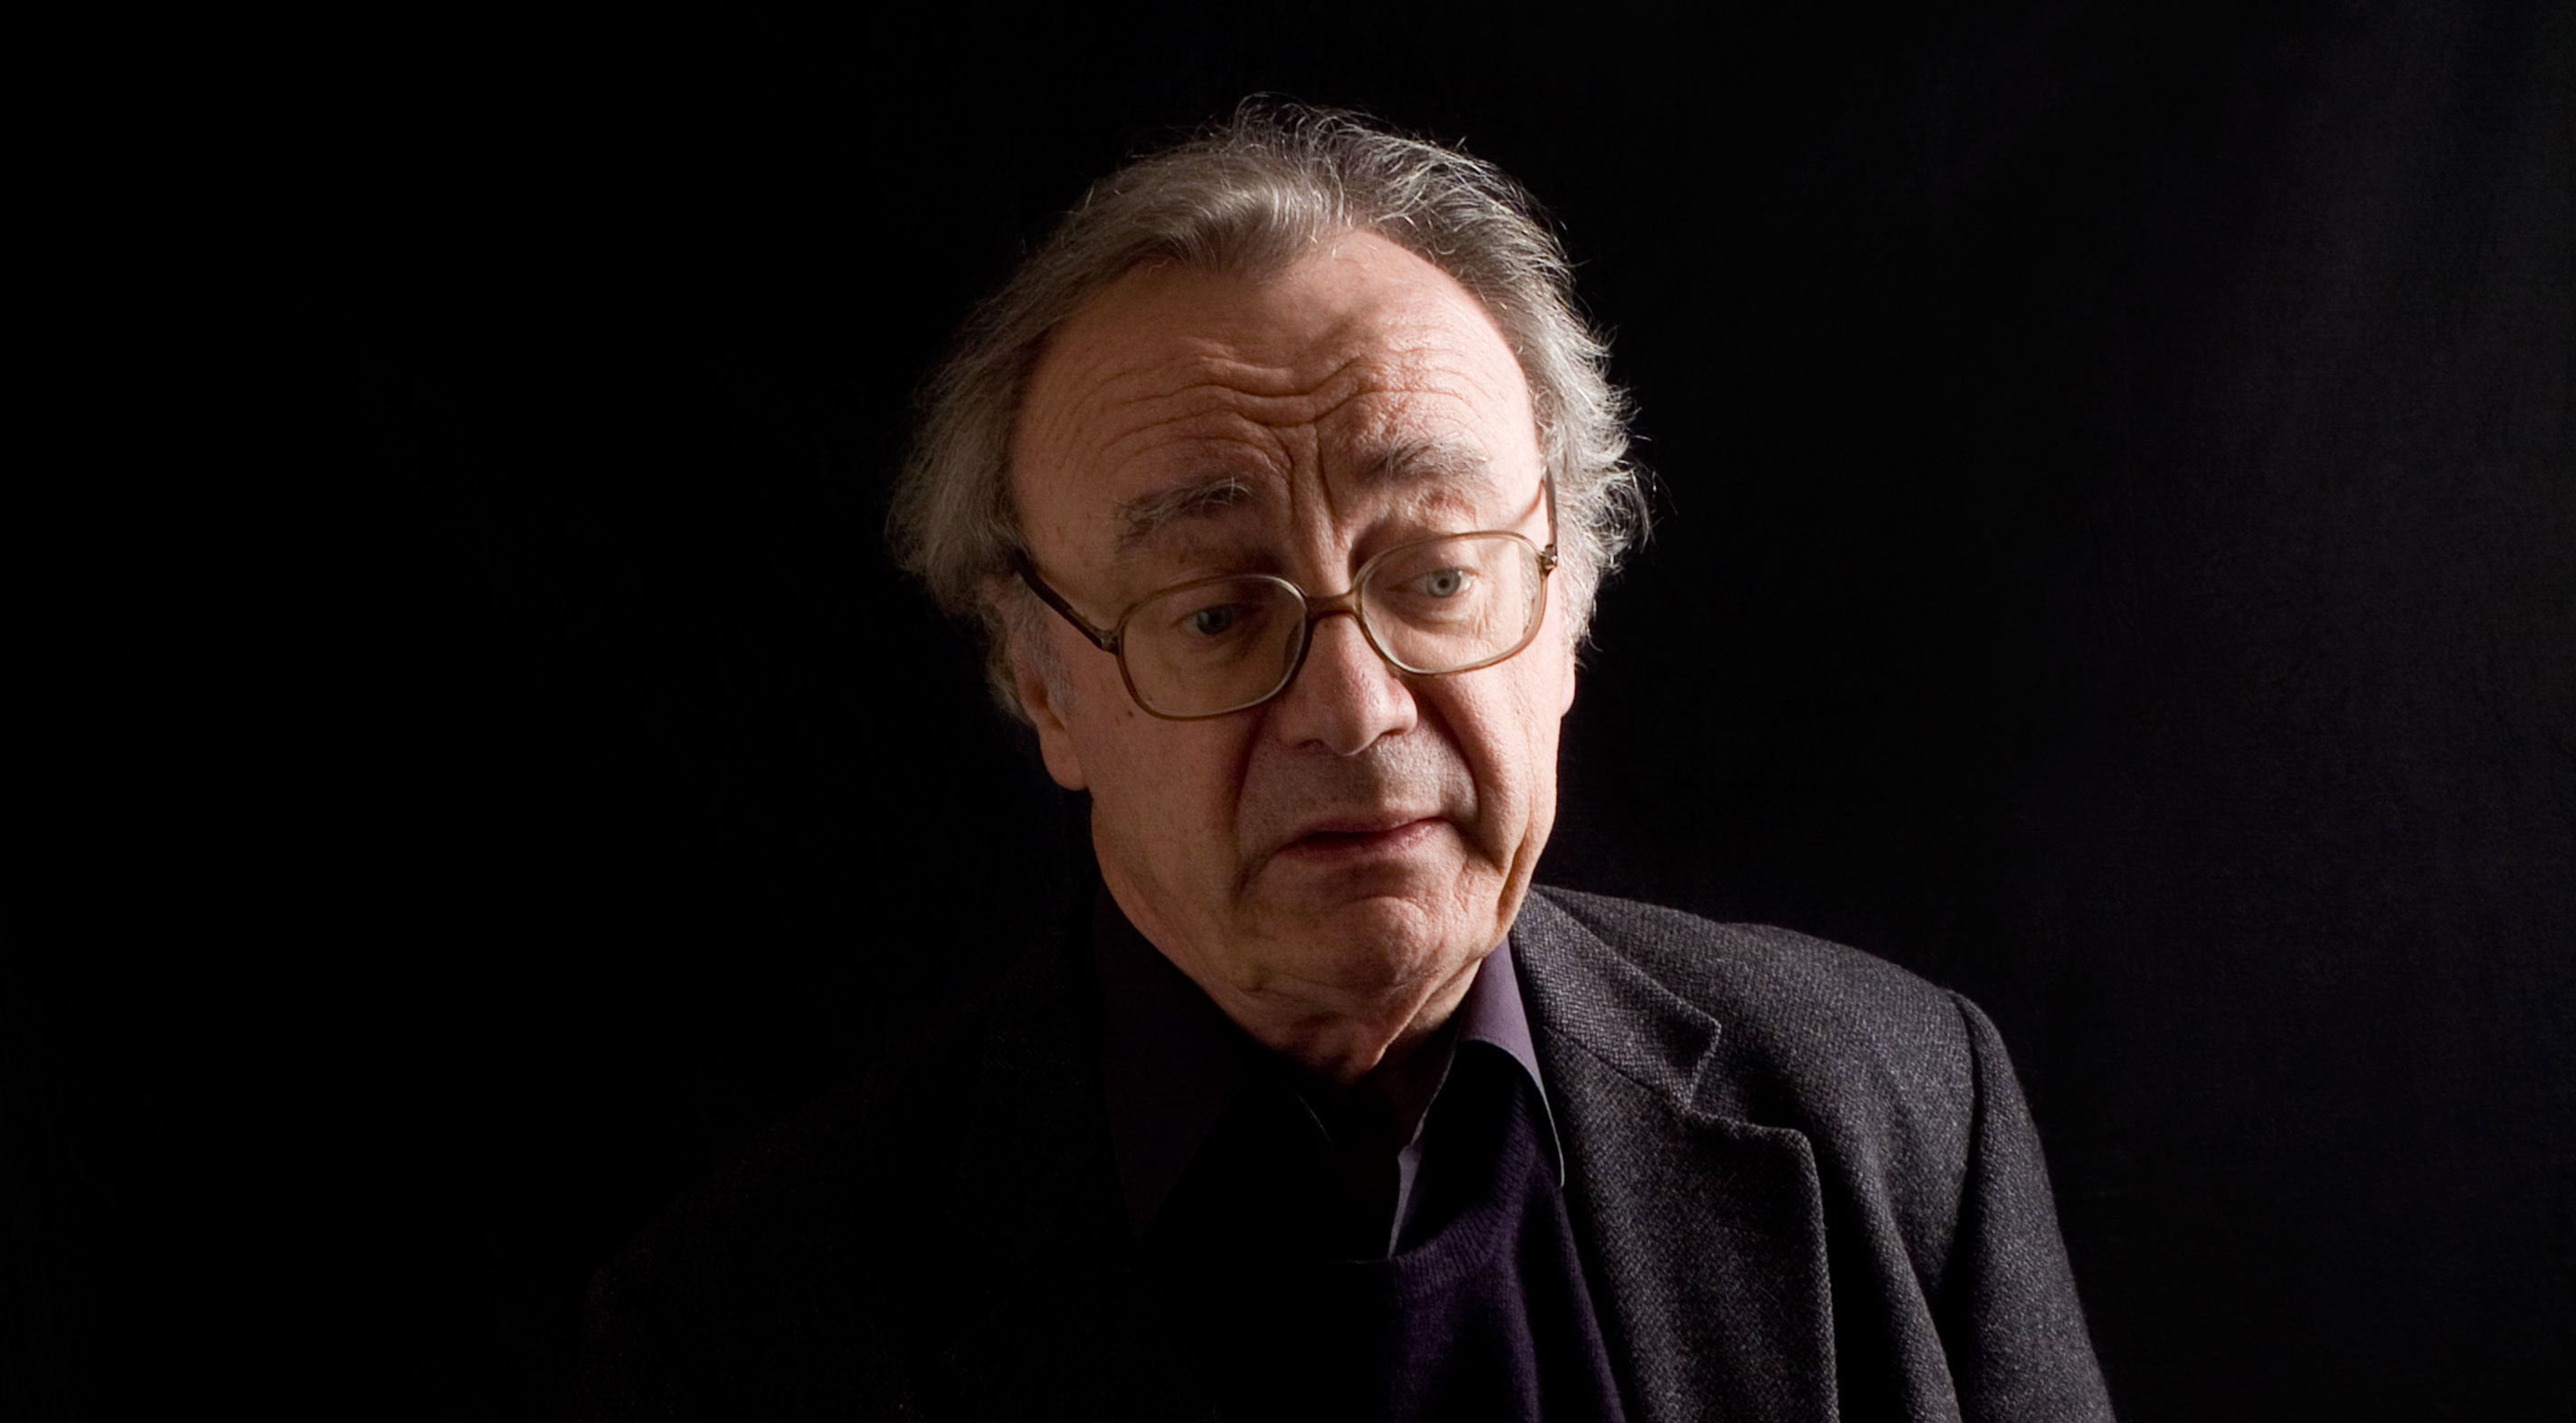 Lecture by Alfred Brendel: My Life in Music